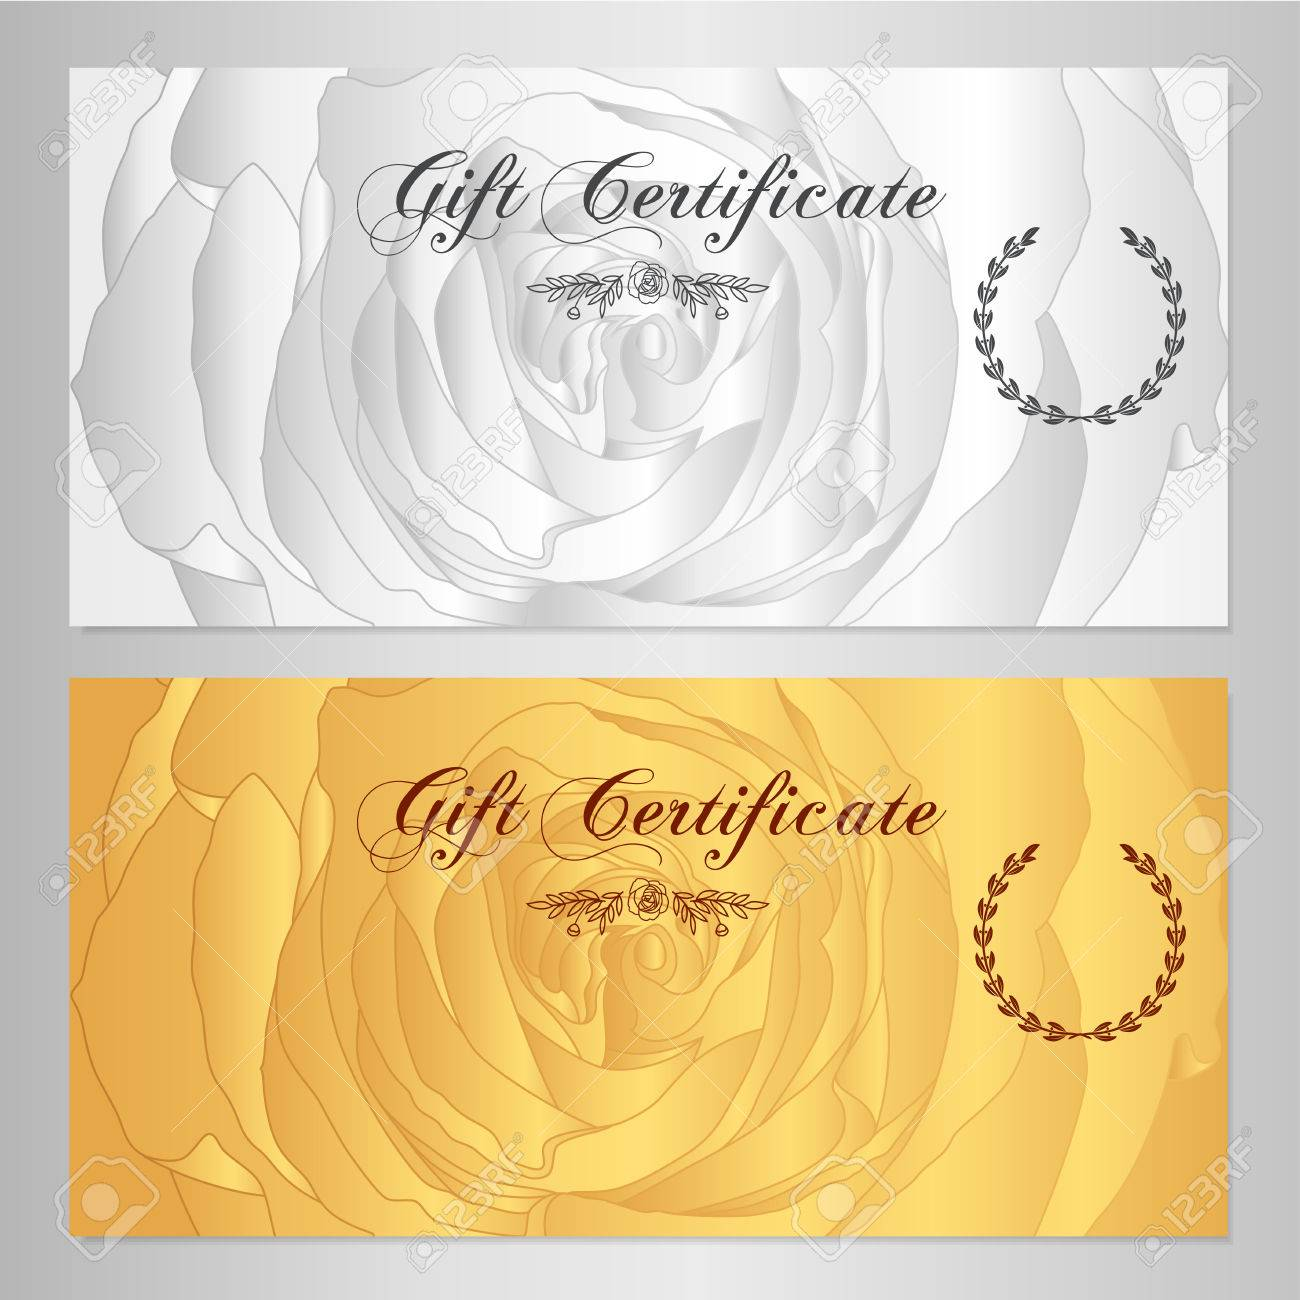 Gift certificate voucher coupon reward floral gift card gift certificate voucher coupon reward floral gift card template with rose flowers pattern 1betcityfo Images